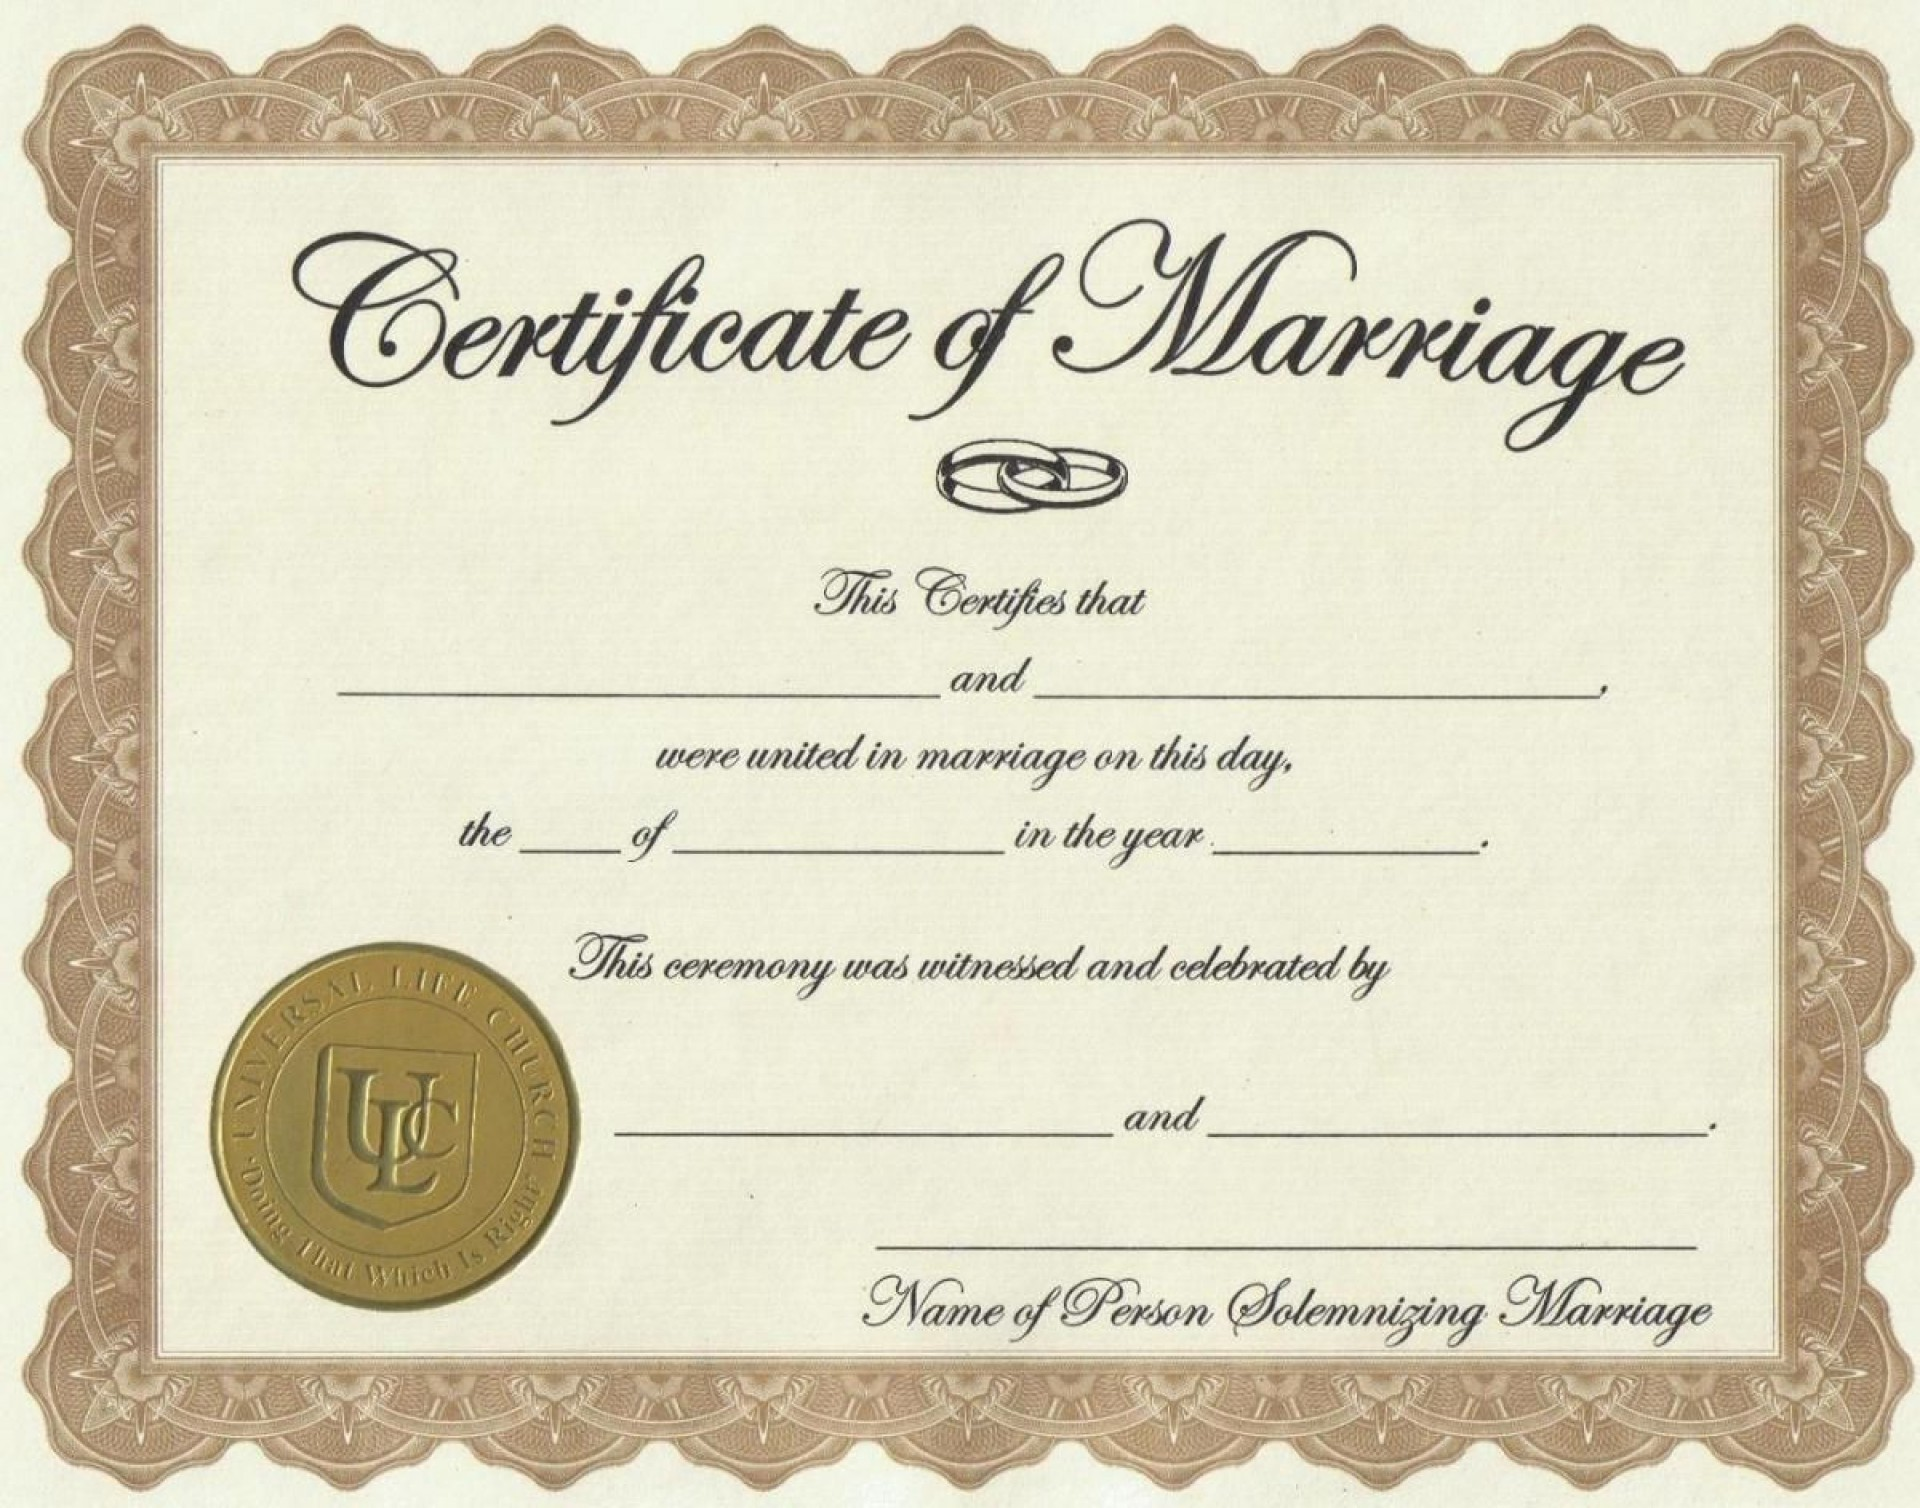 003 Exceptional Certificate Of Marriage Template Highest Clarity  Word Australia1920